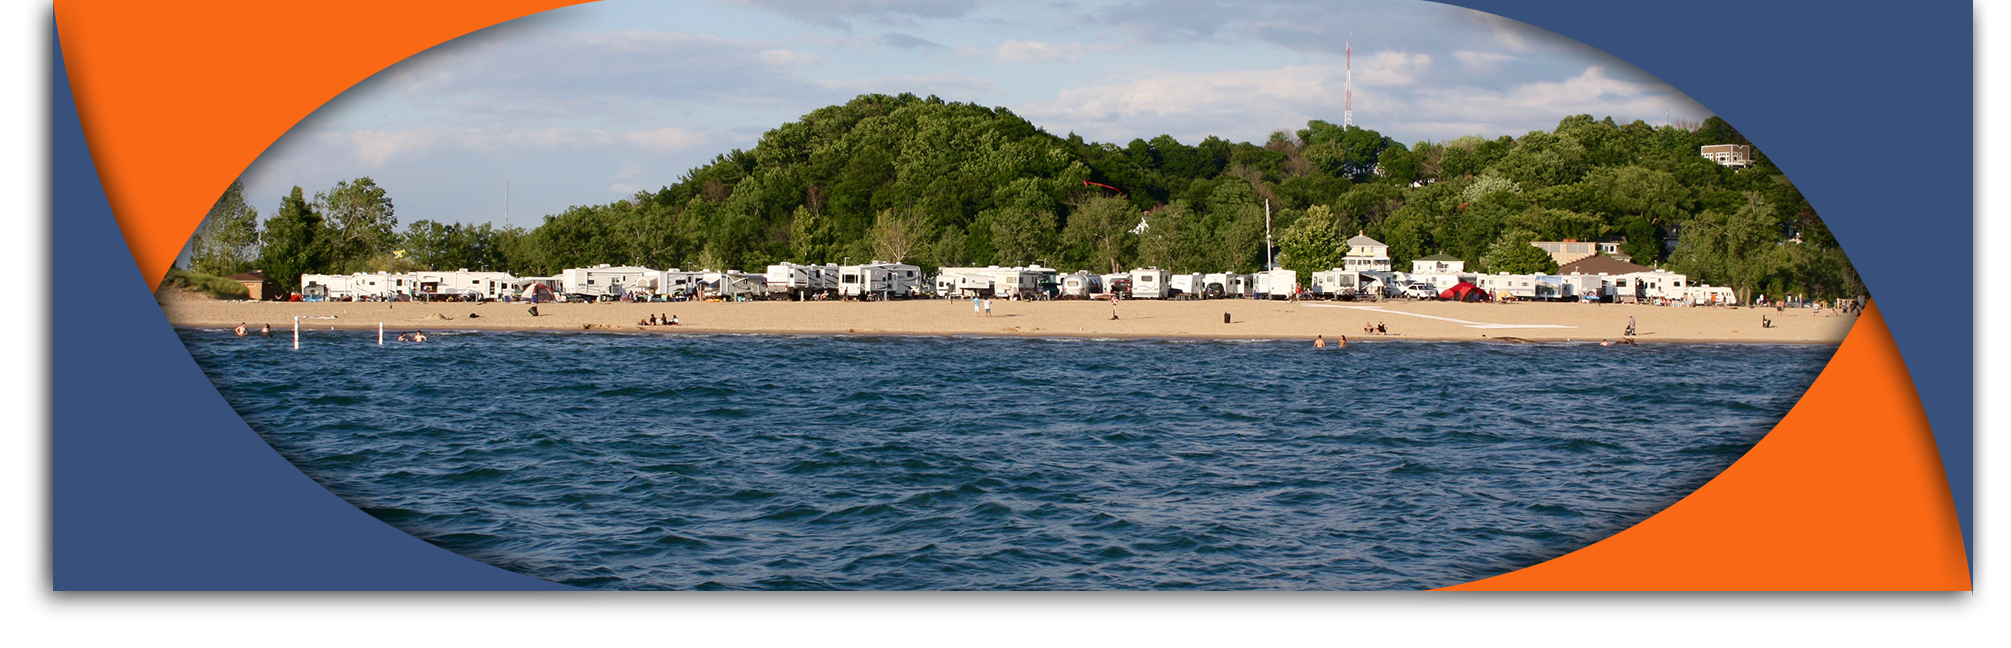 grand haven rv park on lake michigan